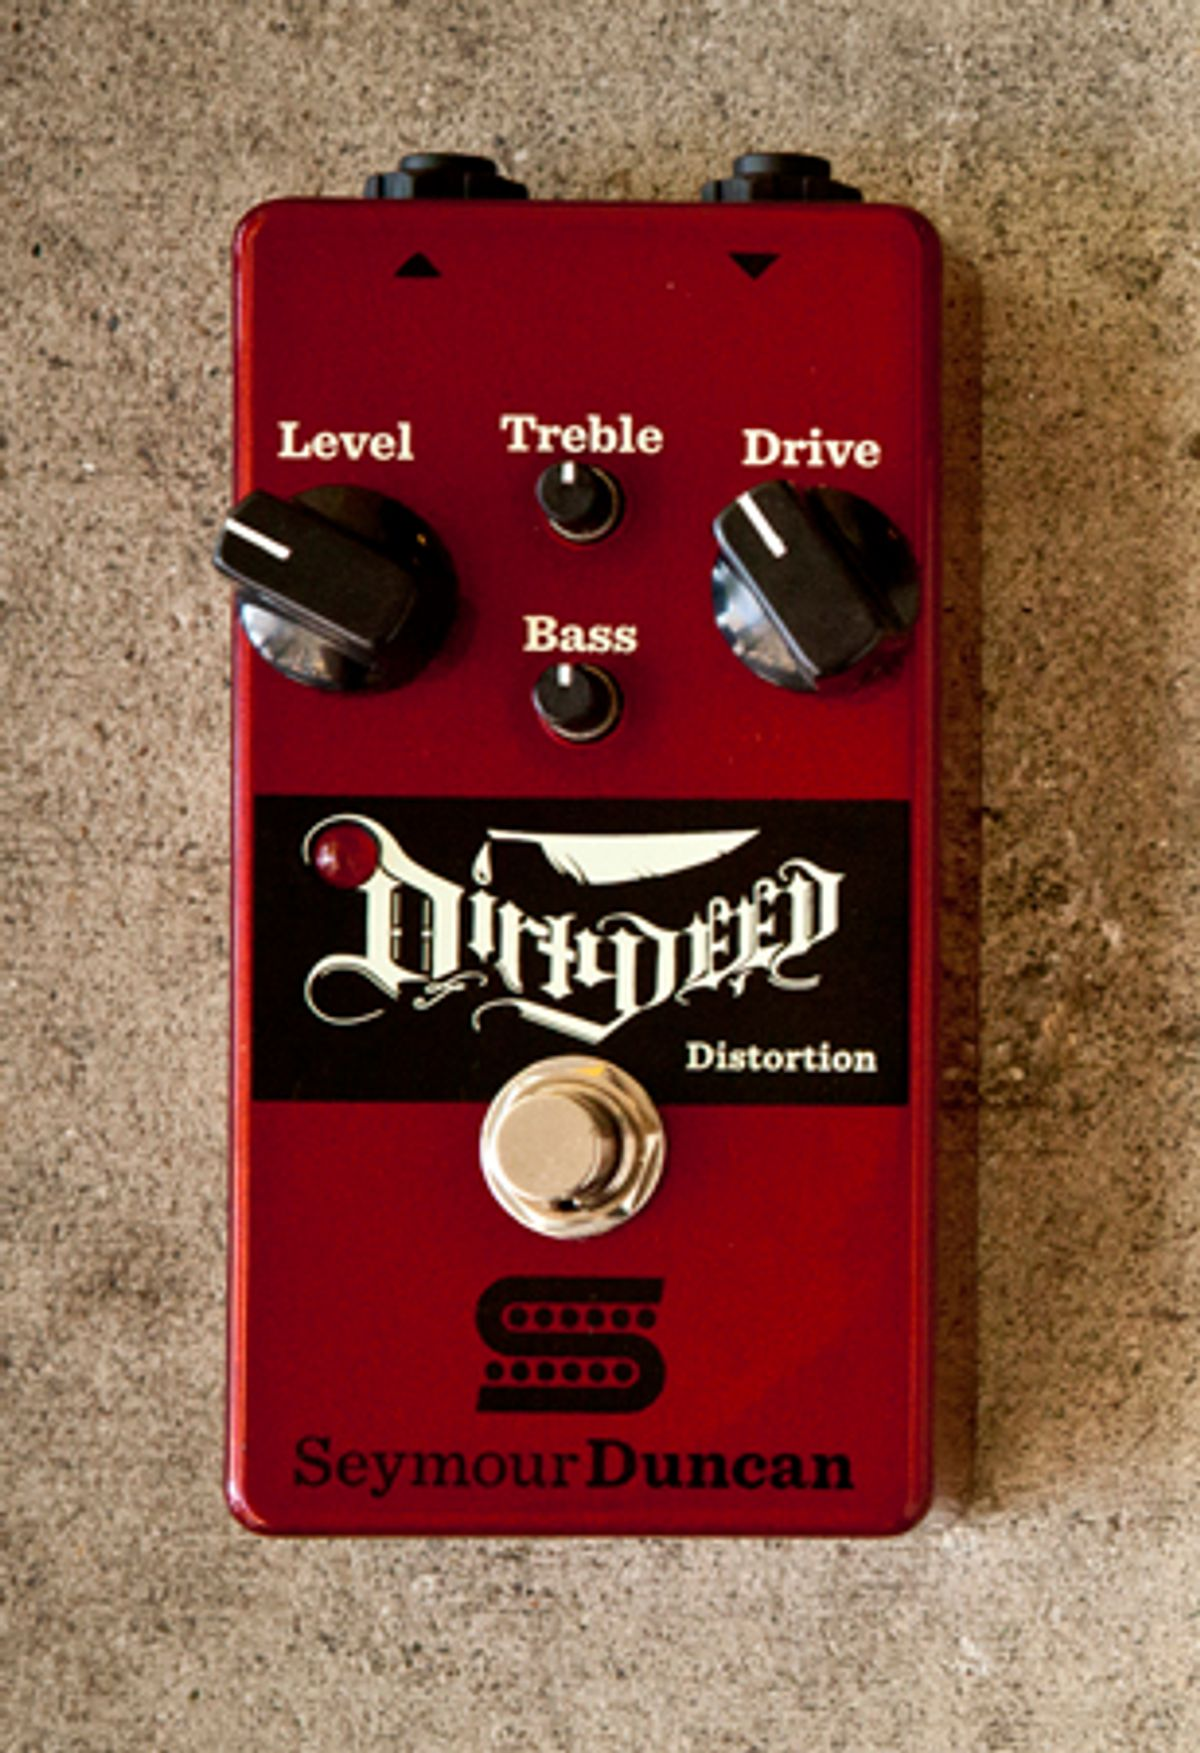 Seymour Duncan Announces the Dirty Deed Distortion Pedal